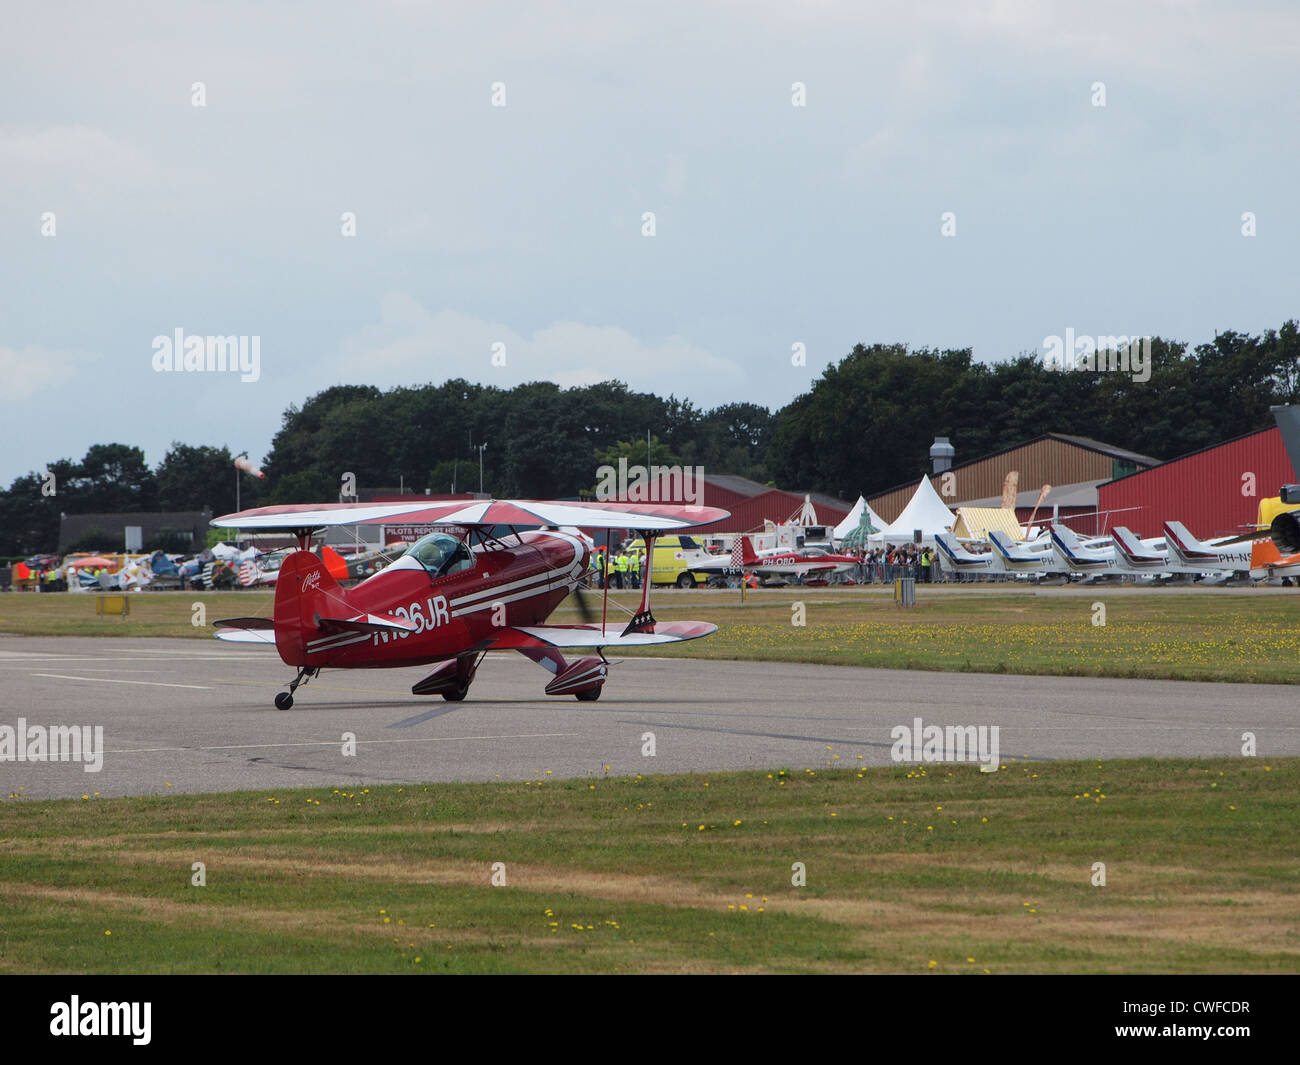 Red Pitts special aeroplane taxiing at Seppe airfield, the Netherlands - Stock Image